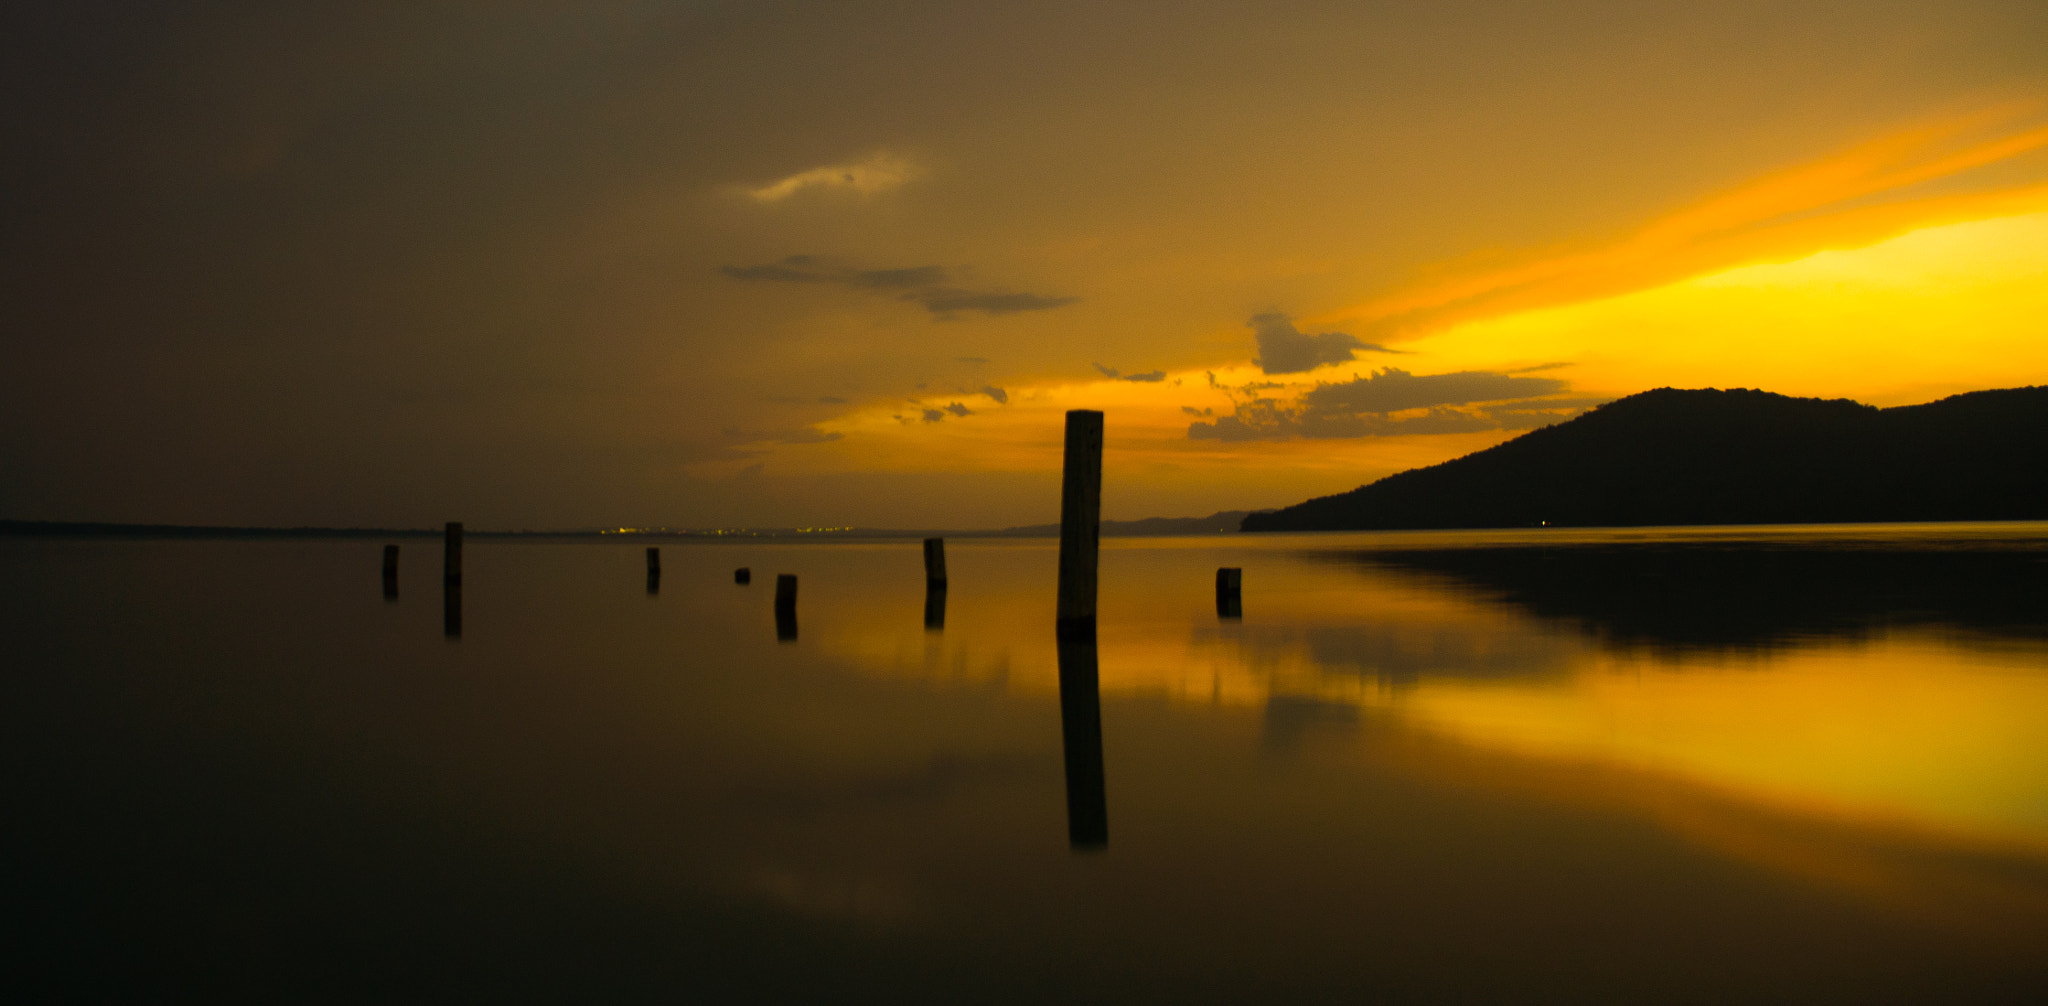 Photograph Sunset over Petén - Itzá Lake (Guatemala) by Lluís Grau on 500px